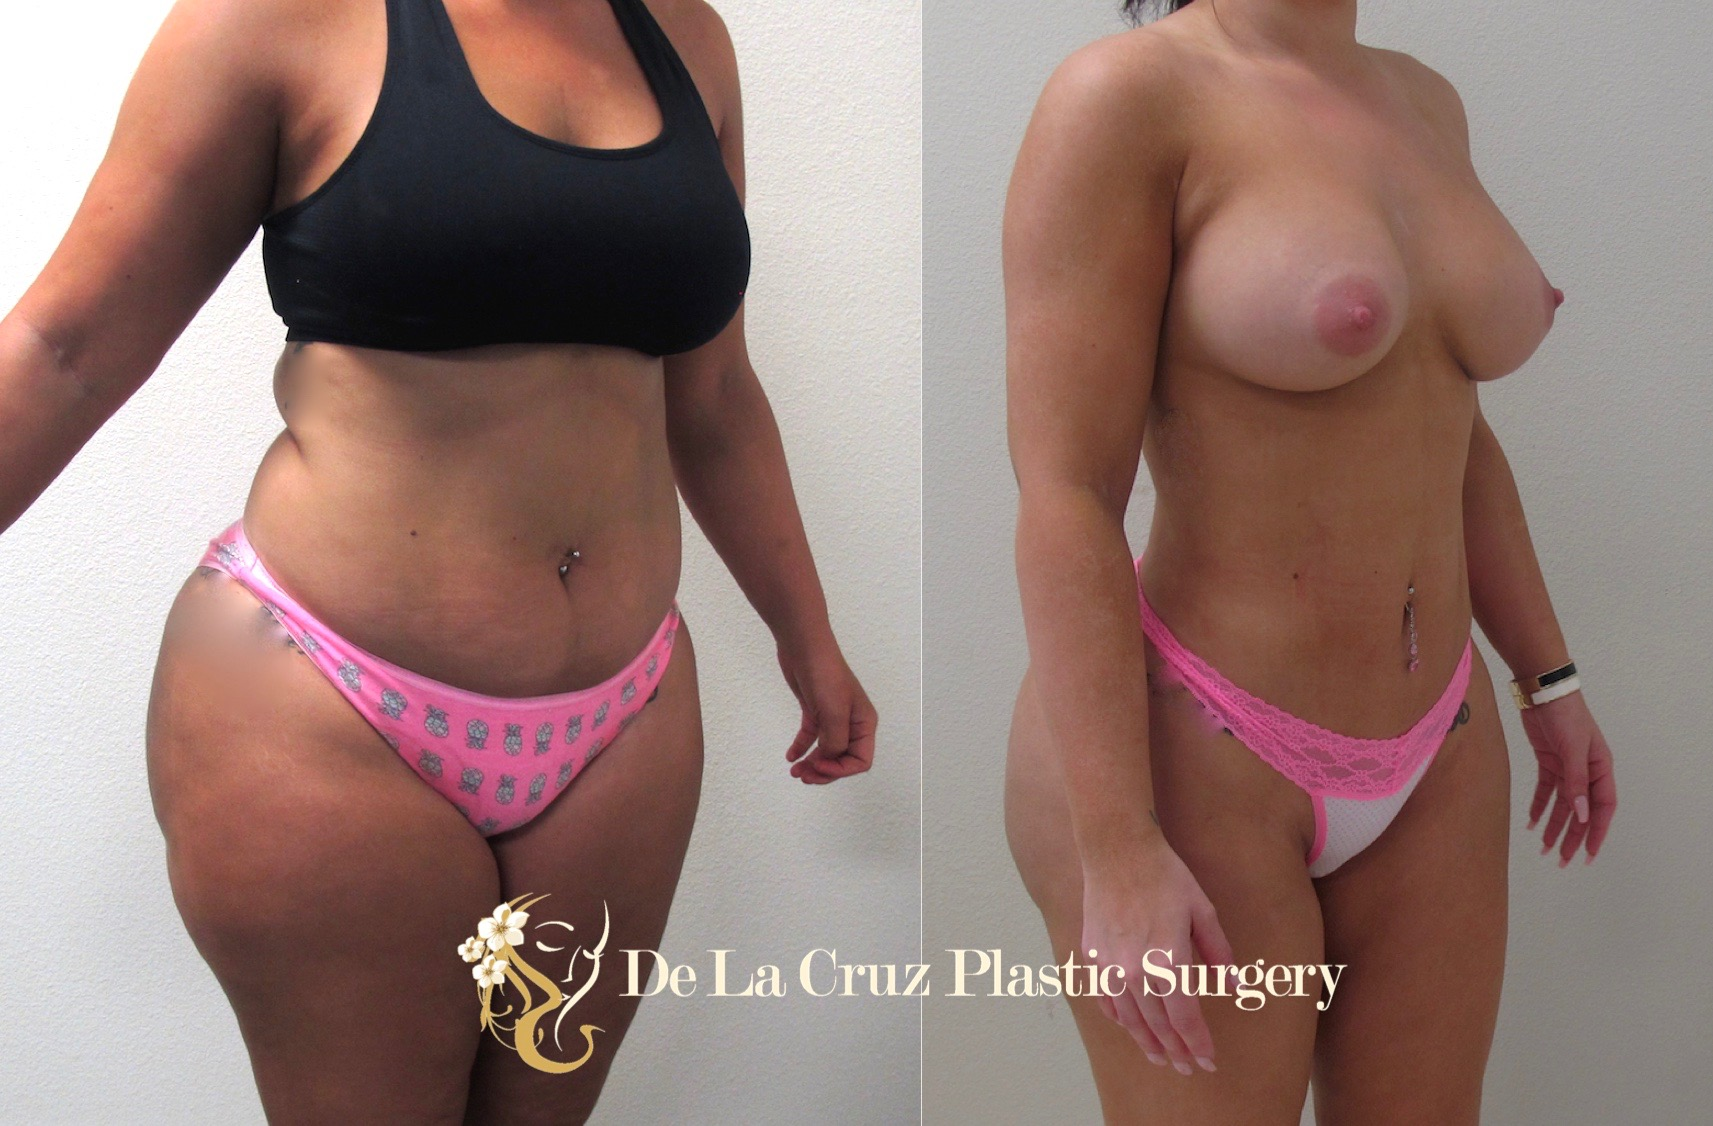 Figure 3:   Before & After Photos   of VASERLiposuction (8 weeks after liposuction) performed by Dr. Emmanuel De La Cruz in Houston TX. Note the significant skin retraction after VASER liposuction. Individual results may vary.